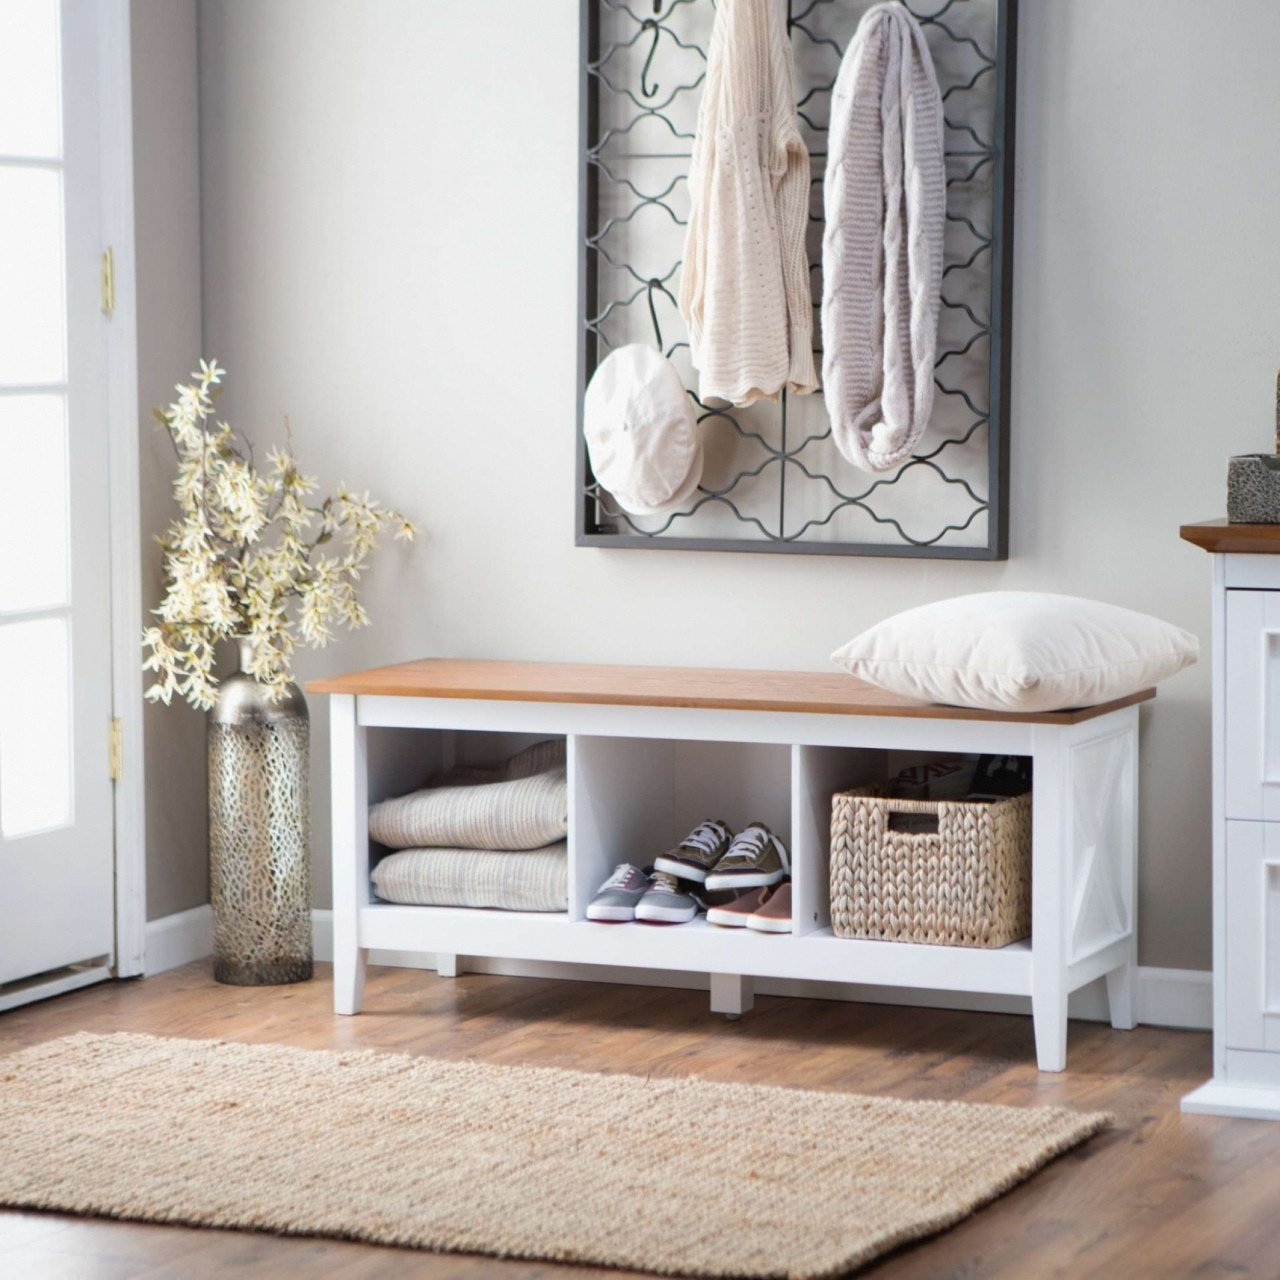 Small Storage Bench for Bedroom Inspirational Shoe Bench Storage — Procura Home Blog